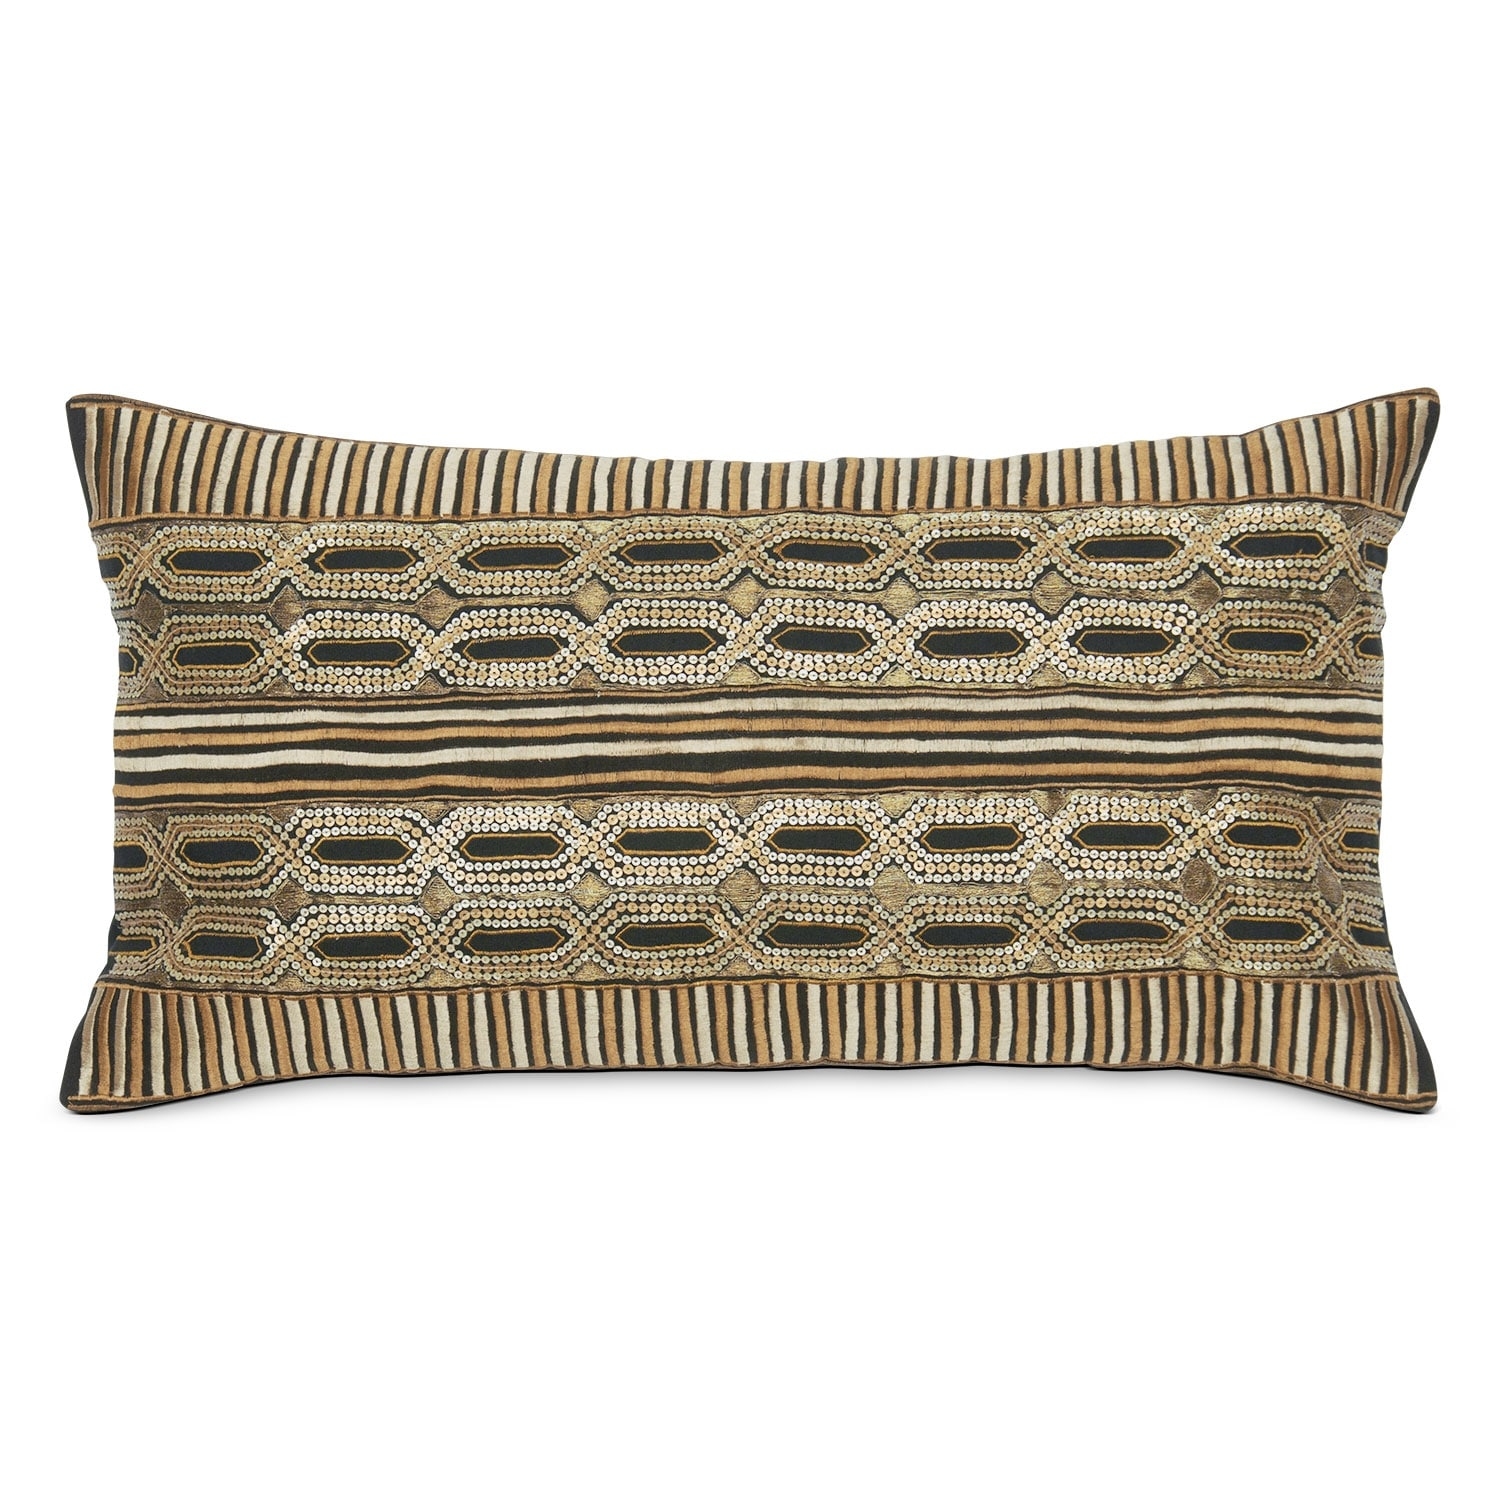 The Ikat Passages Collection American Signature Furniture